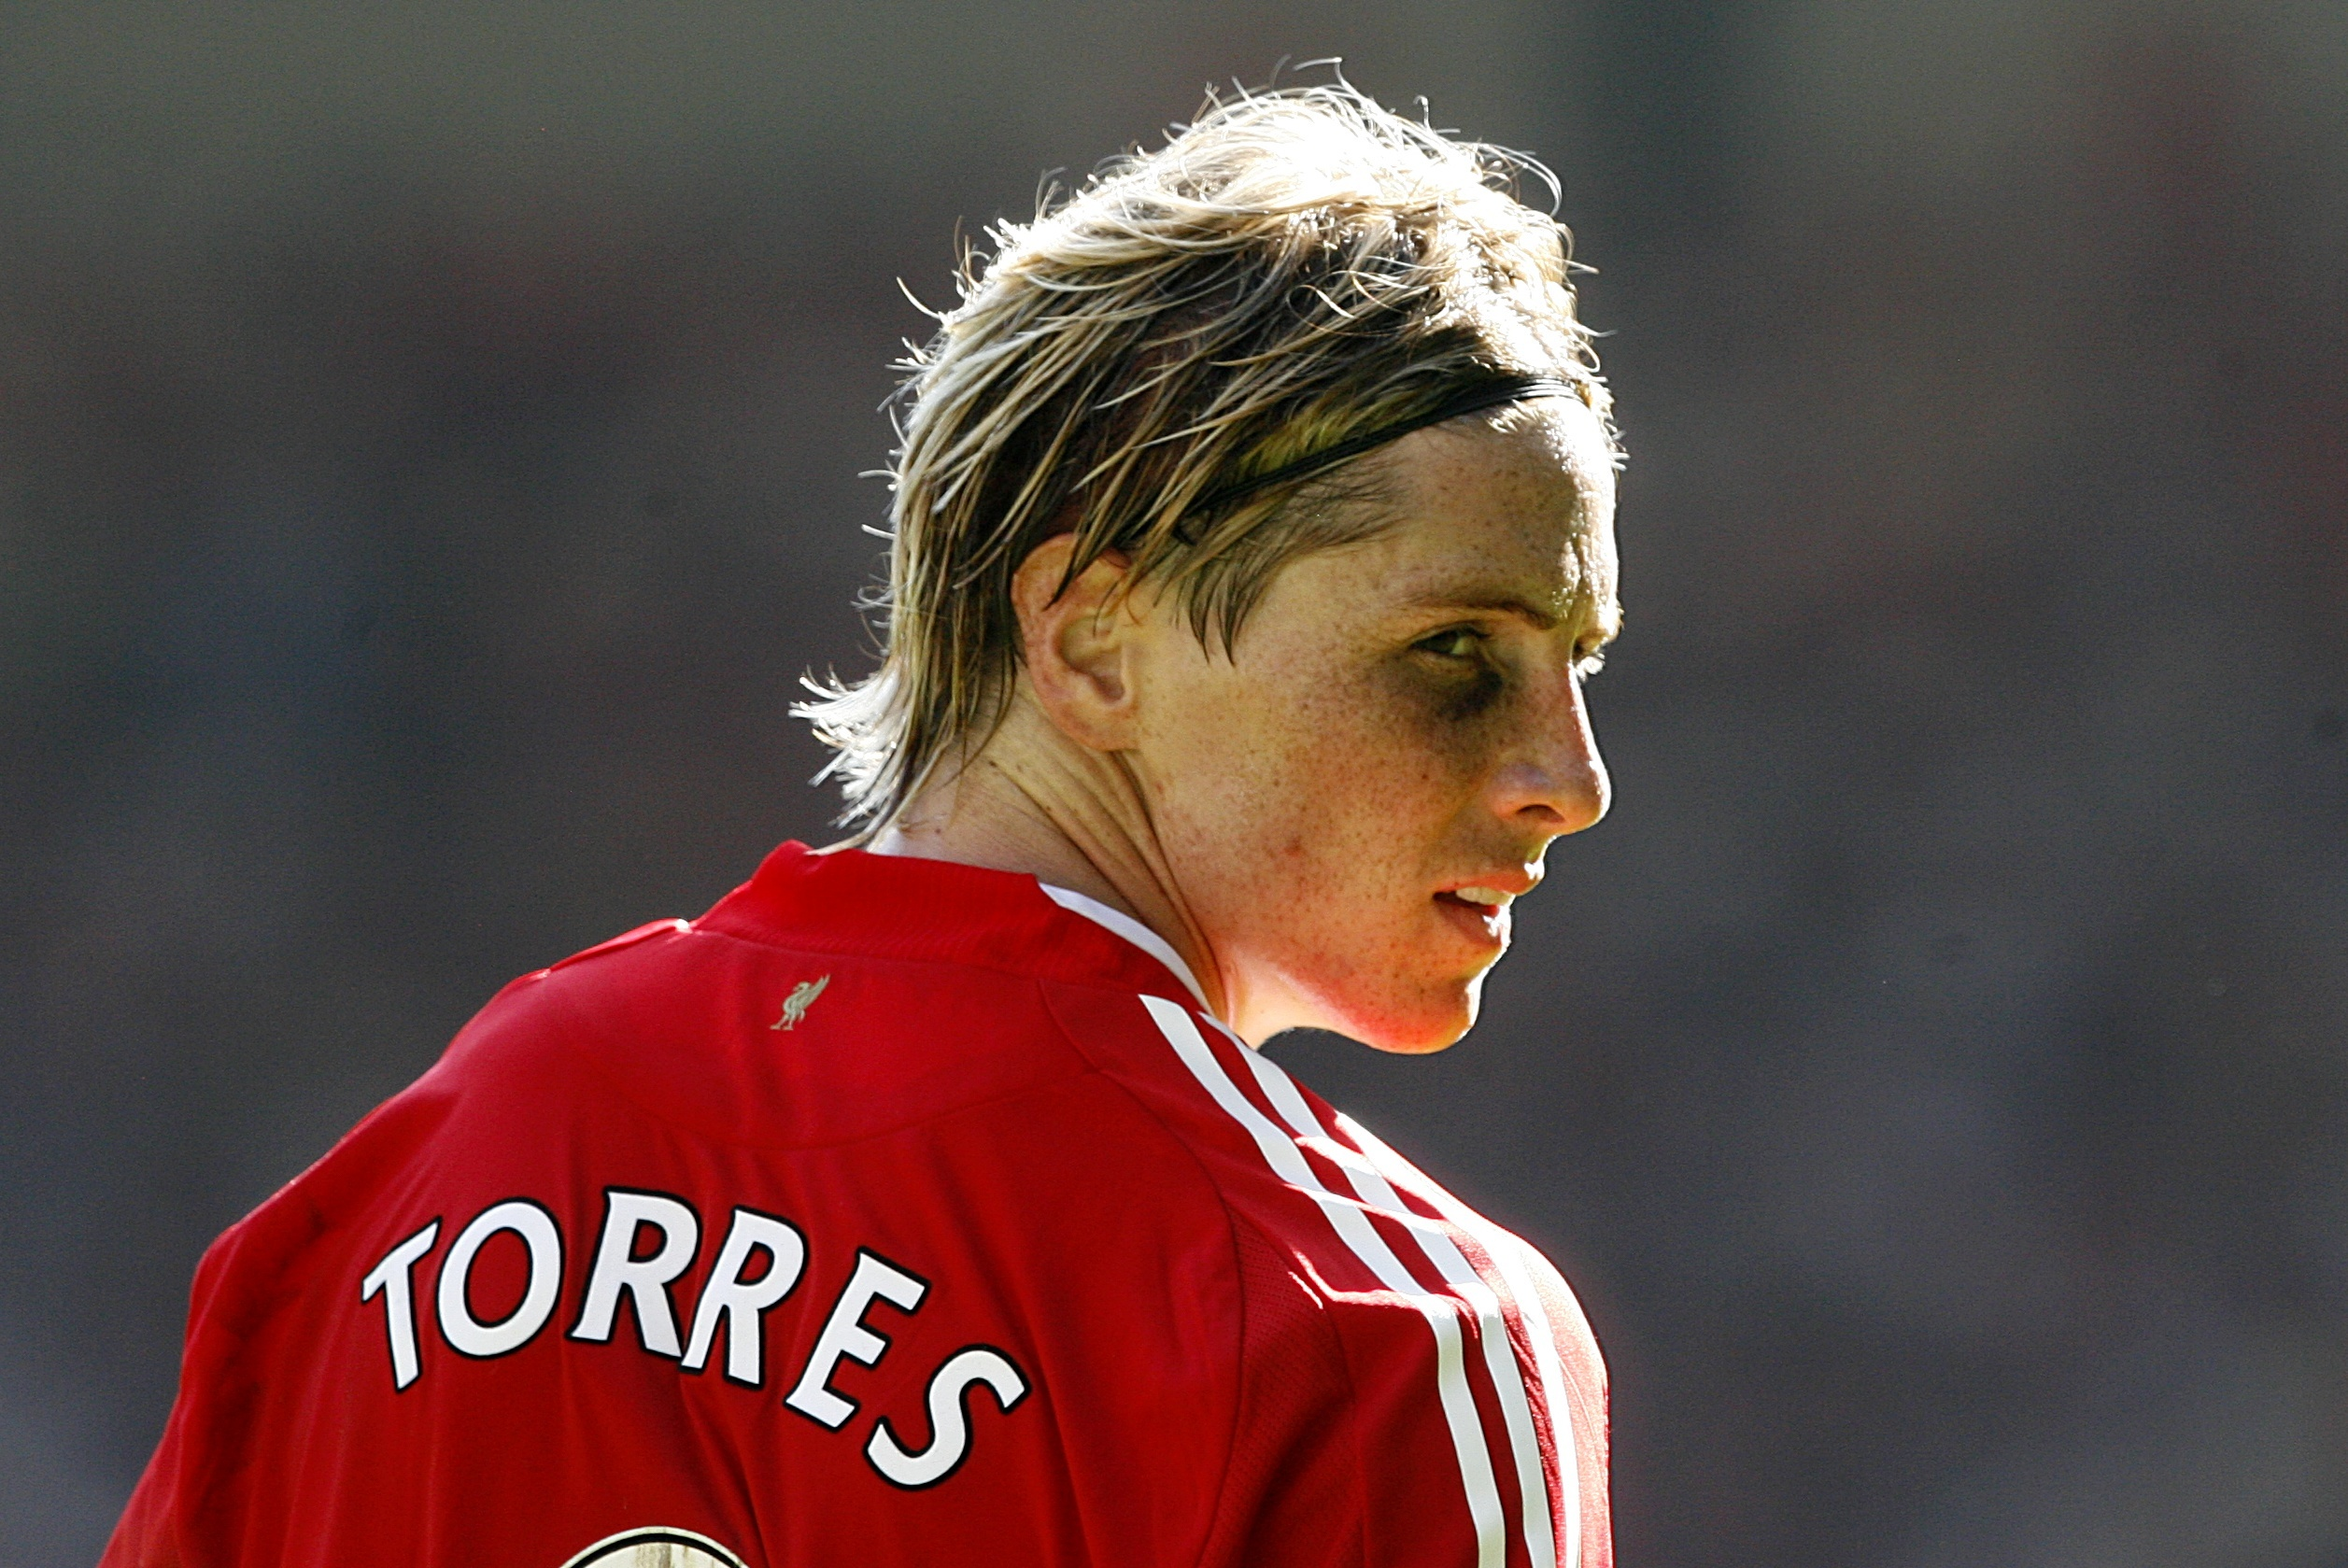 Ex-Liverpool and Chelsea striker Torres plays his final game